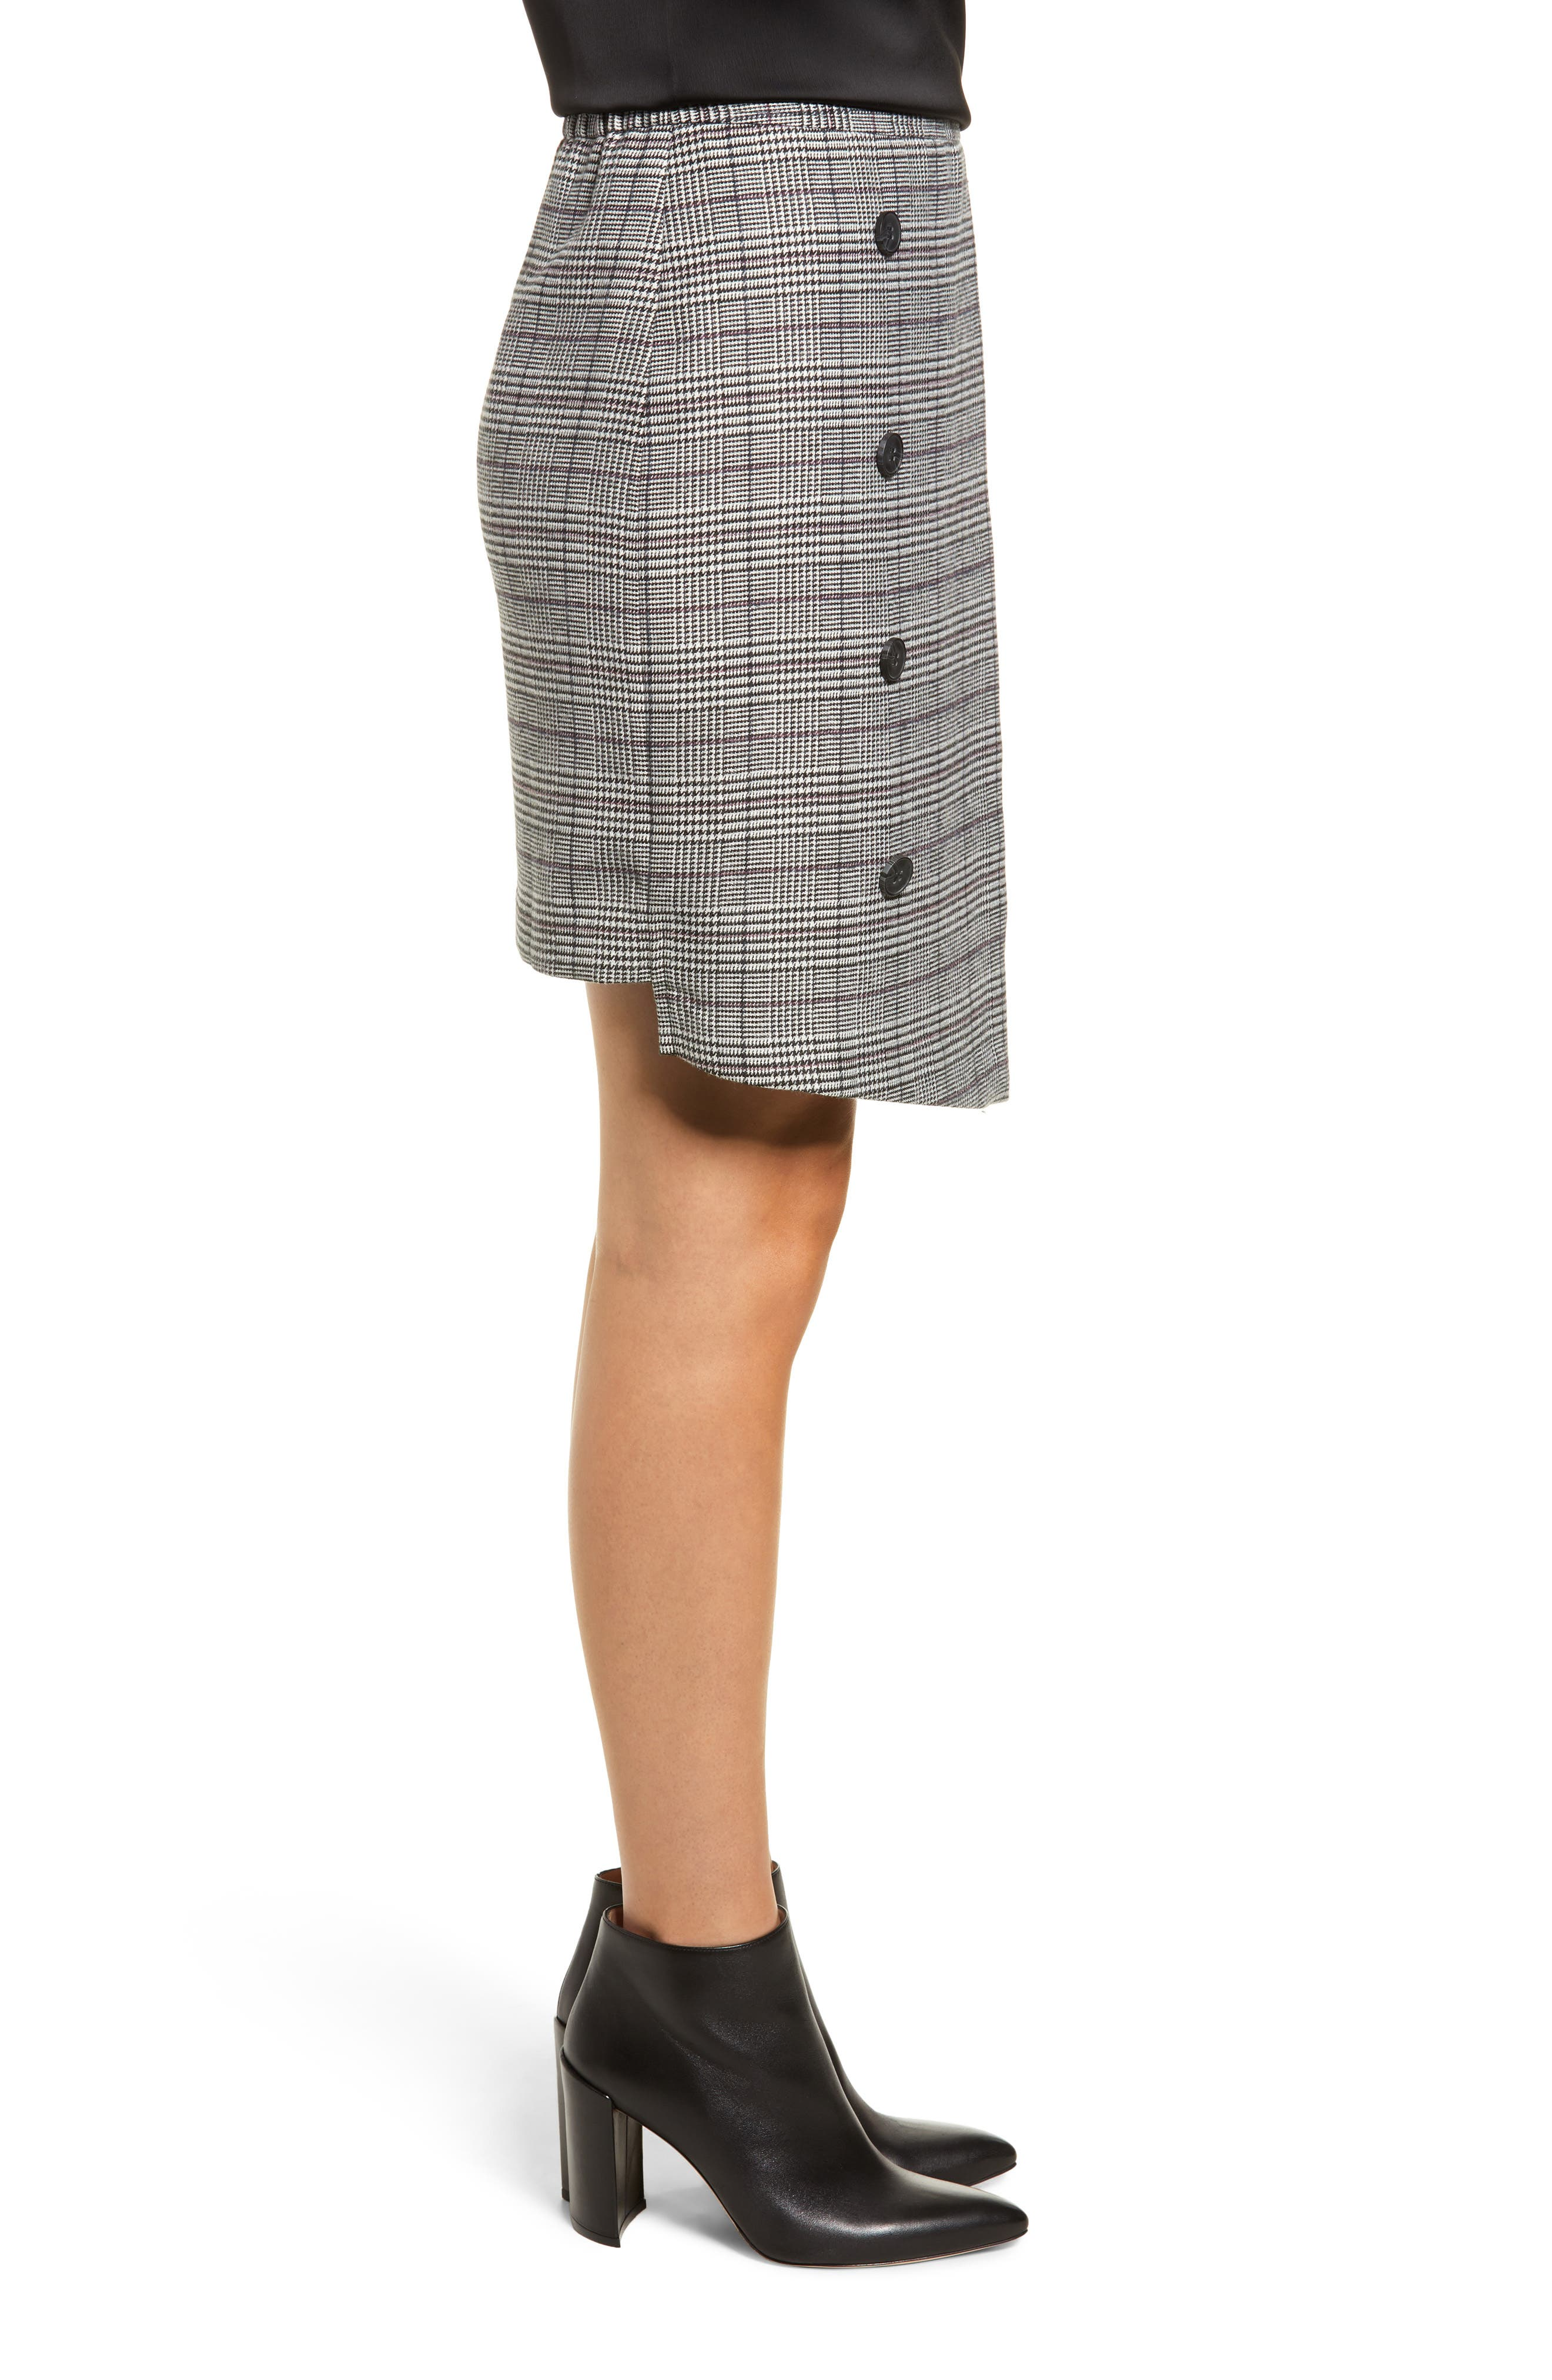 Chriselle Lim Bianca Houndstooth Button Front Skirt,                             Alternate thumbnail 4, color,                             GREY PLAID